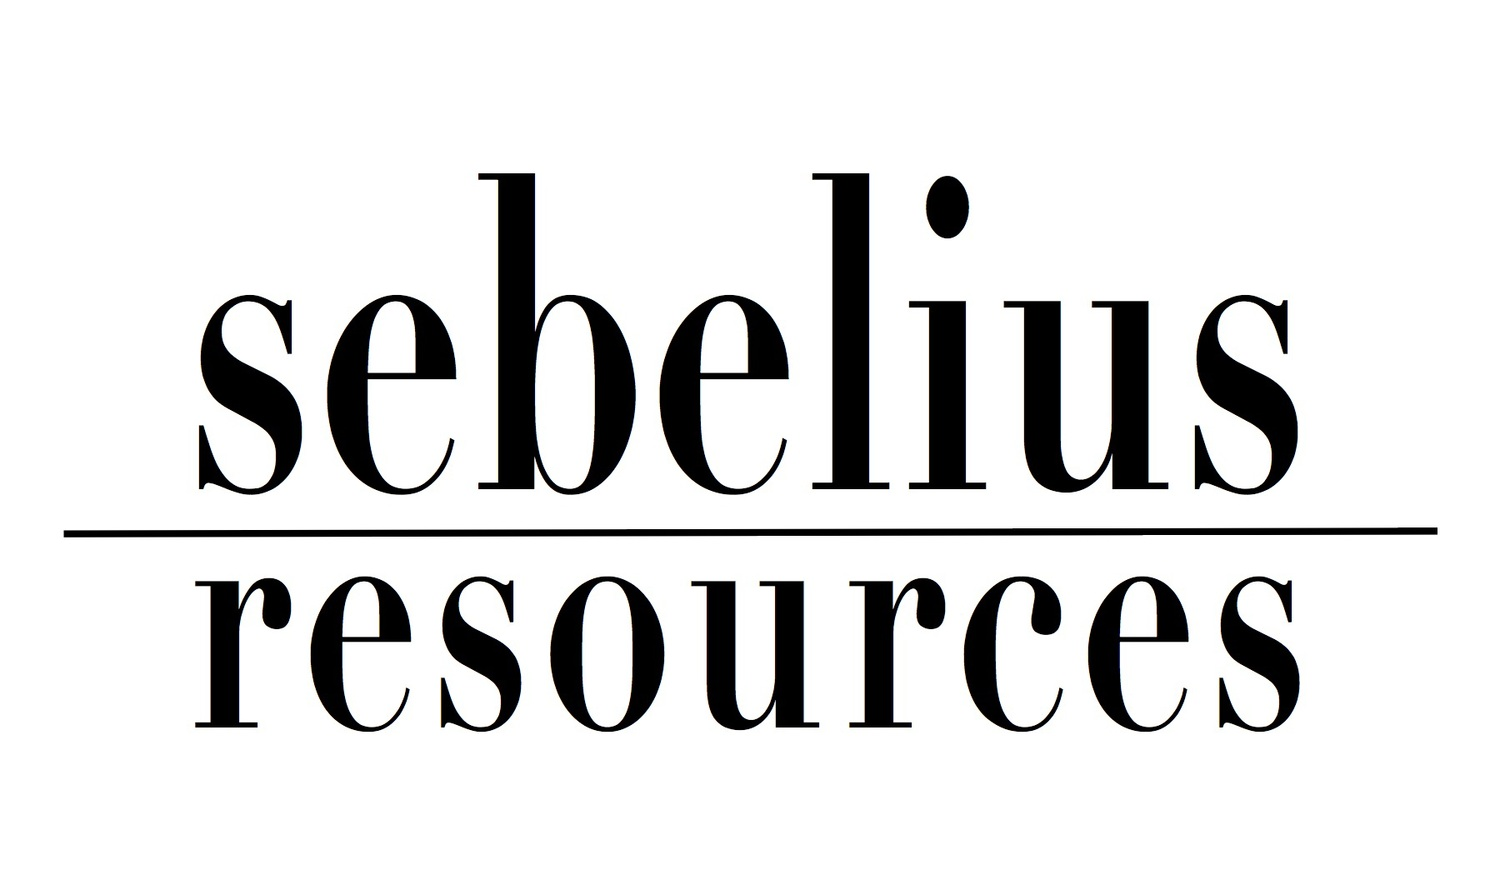 Sebelius Resources LLC